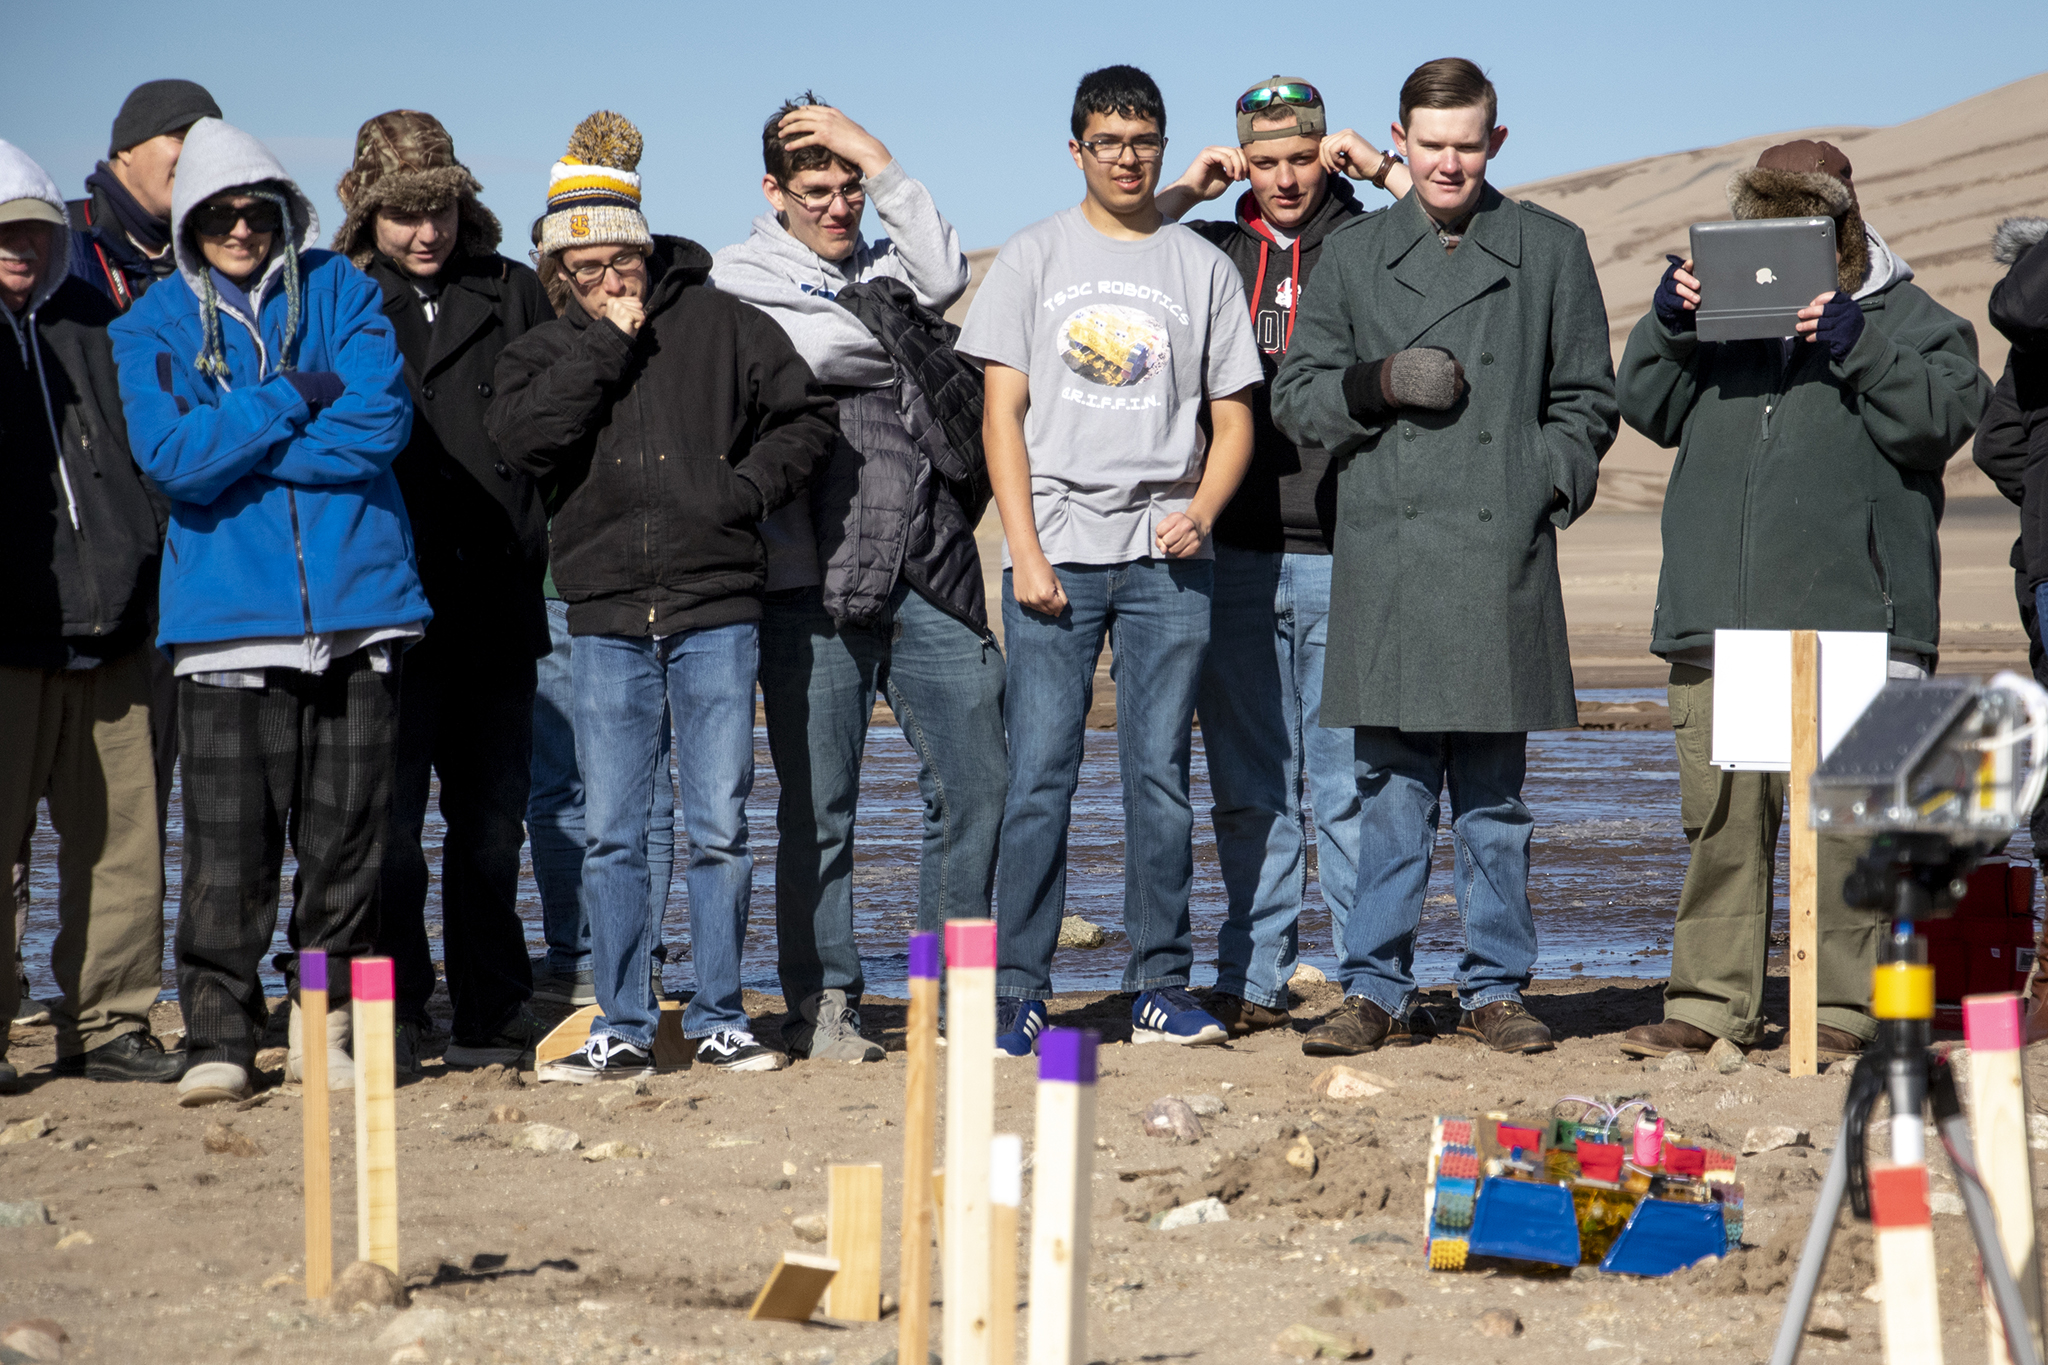 Photo: Great Sand Dunes | Robot Students 4